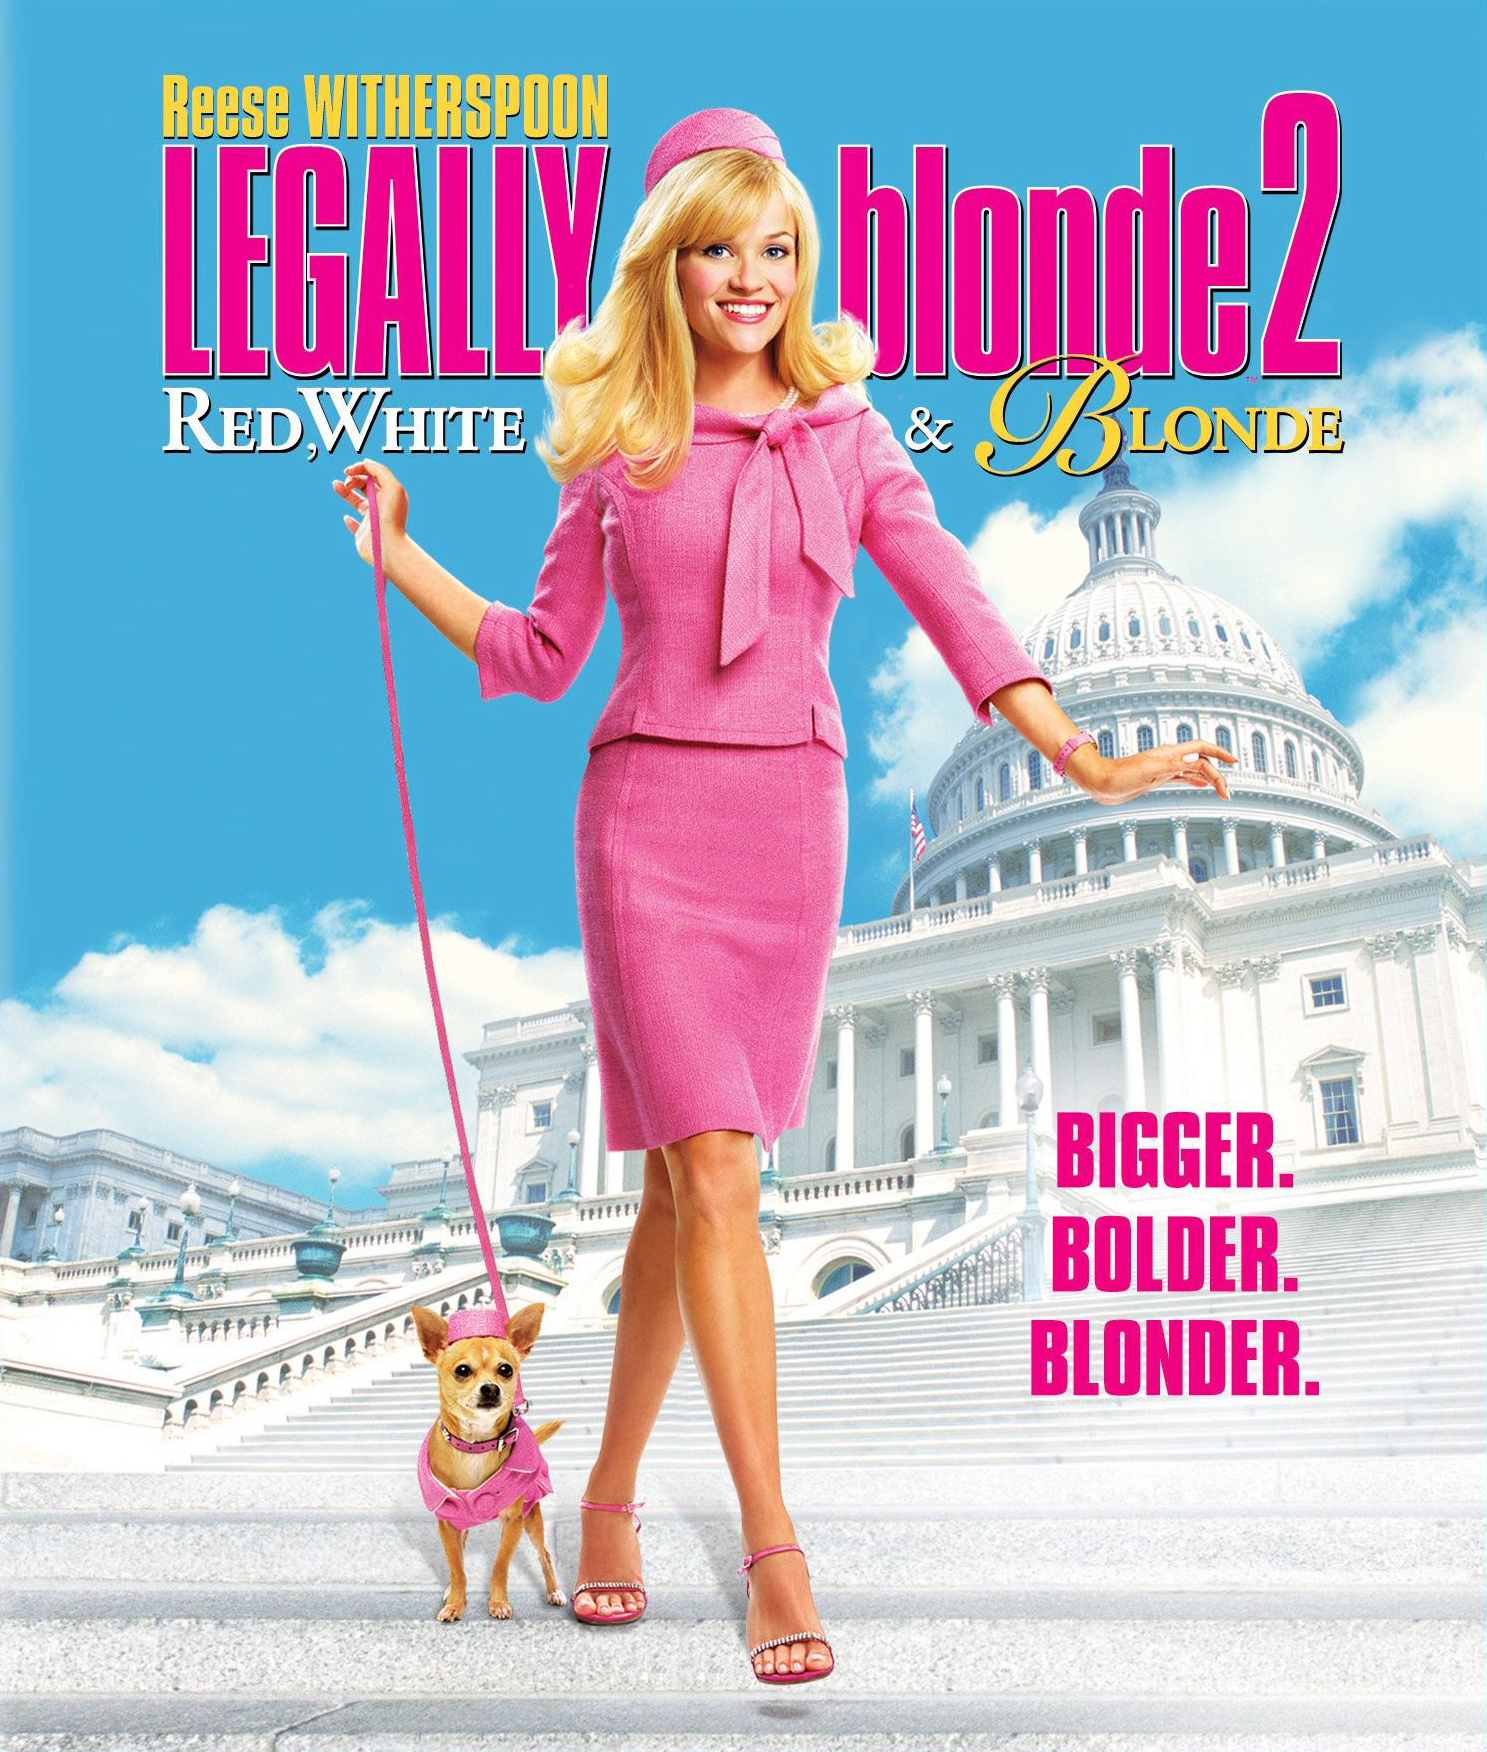 a review on the movie legally blonde 2001 Movie trailers moviefone originals close legally blonde (2001) rating & reviews see full movie info read critic and user reviews for legally blonde.